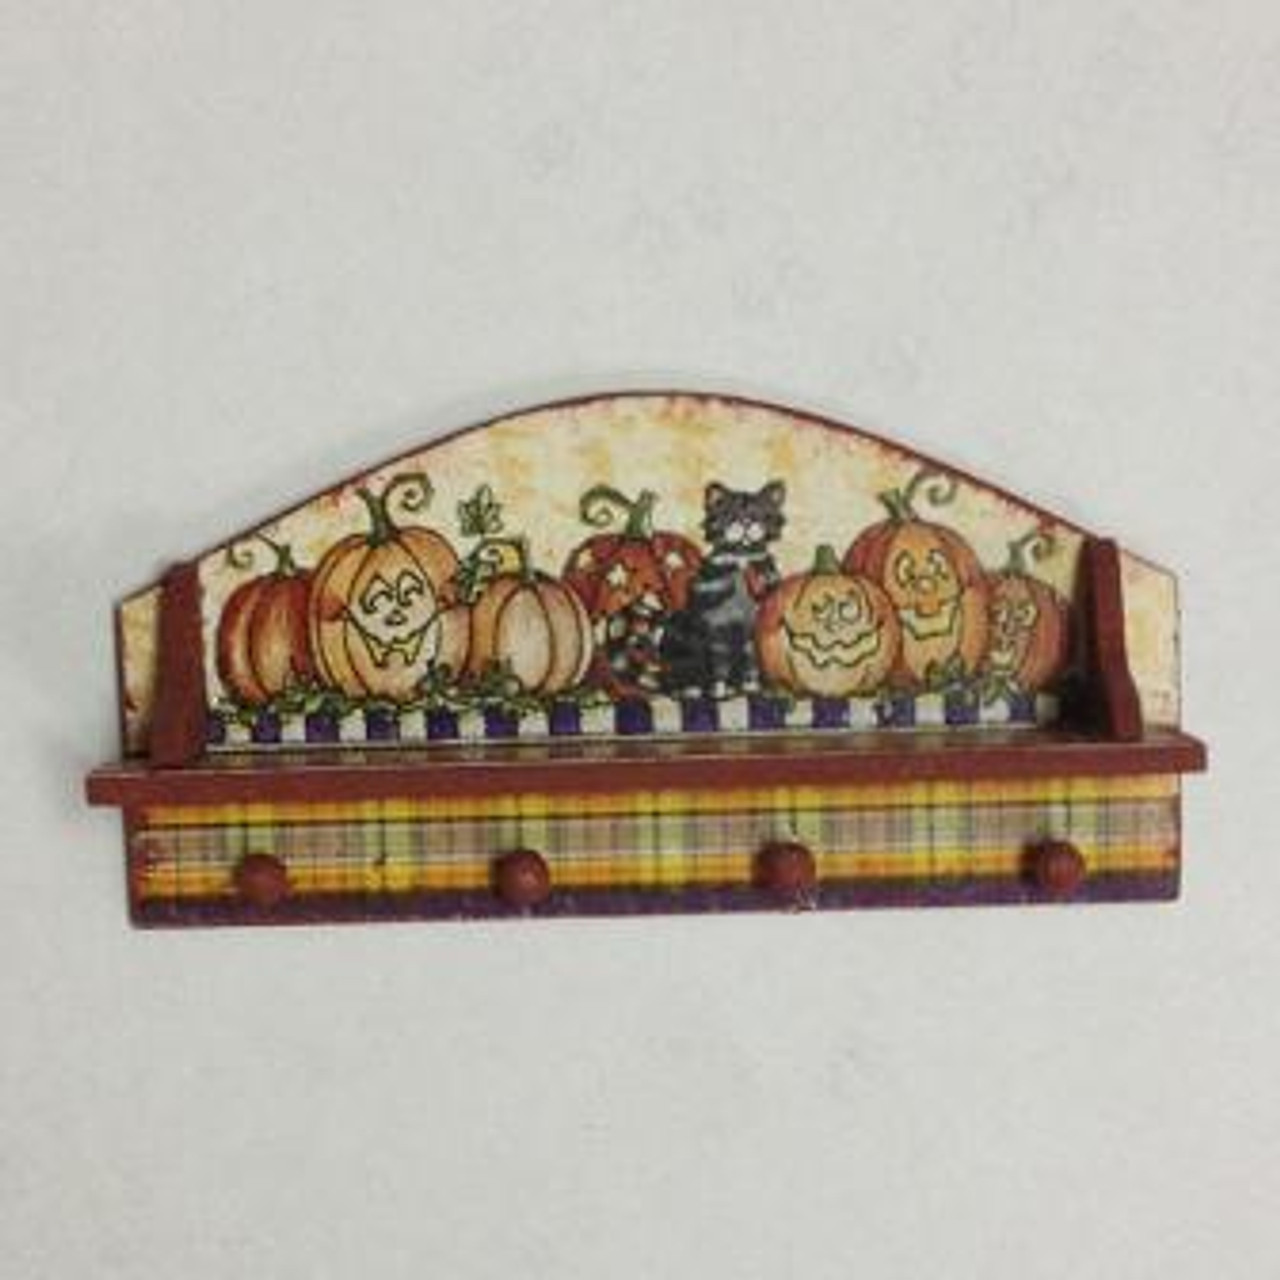 Halloween Peg Hook Shelf (DFI207A) kit; shown assembled with one of the several decorative options